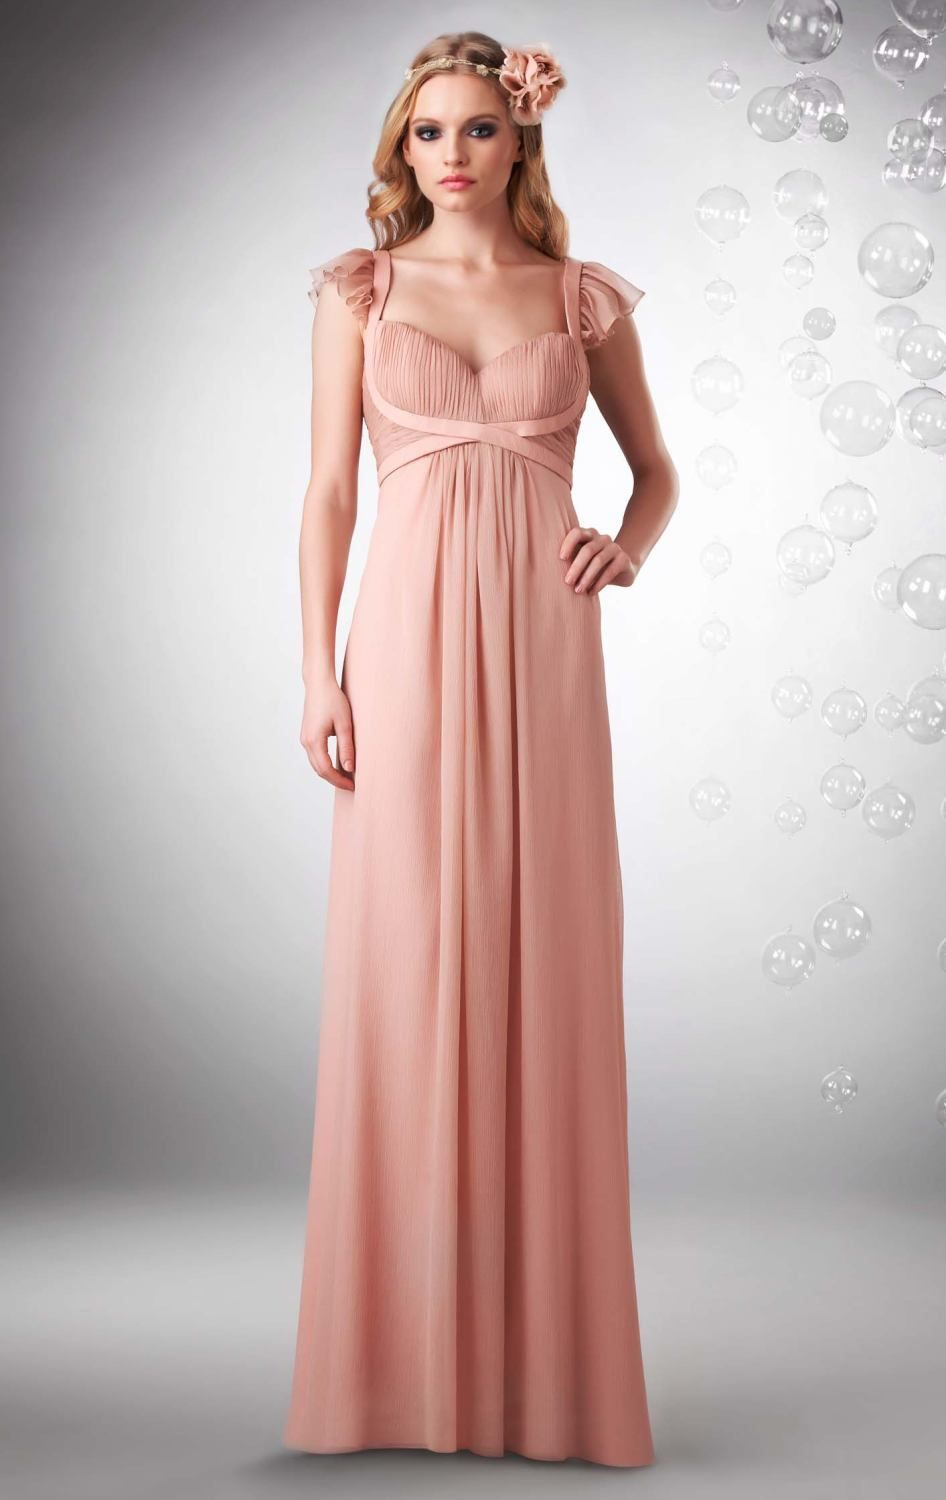 Aliexpress.com : Buy Elegant Latest Design Pink Maternity Bridesmaid ...